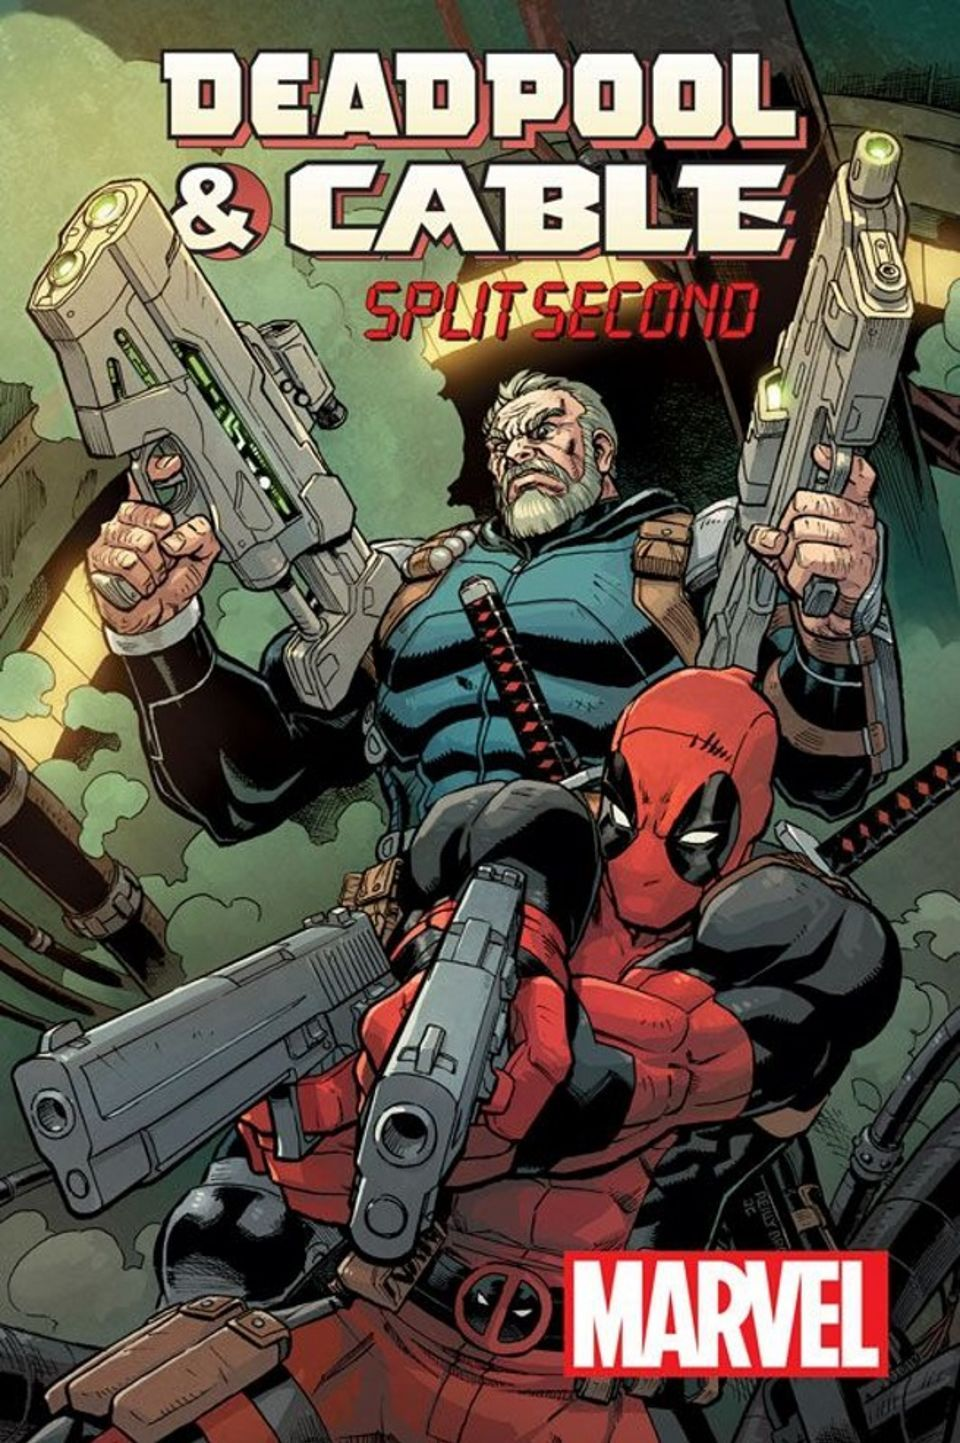 Deadpool and Cable Are Teaming Up Once Again for a Marvel